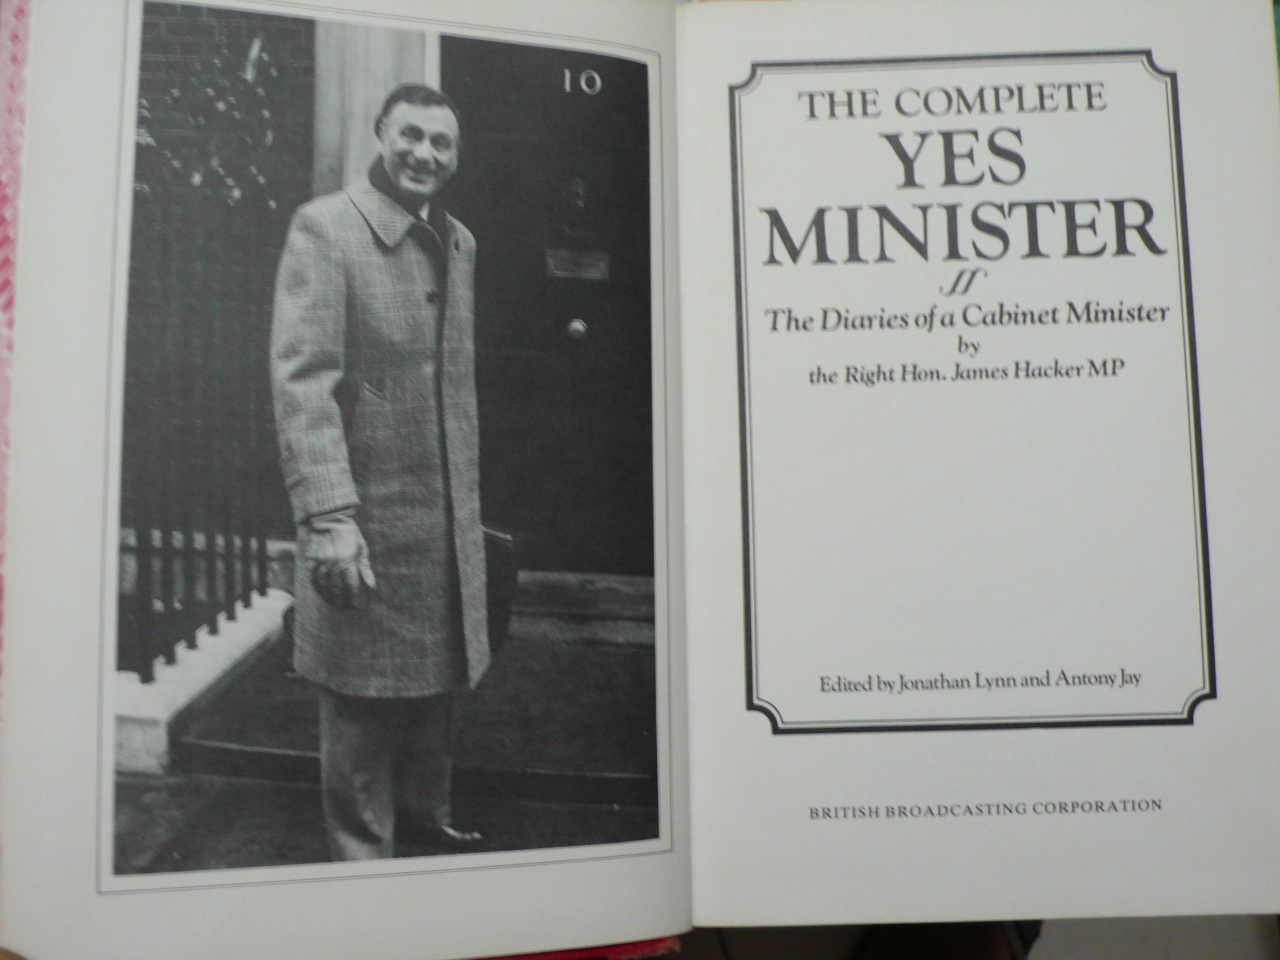 the complete yes minister: the diaries of a cabinet minister, by the right hon. james hacker mp